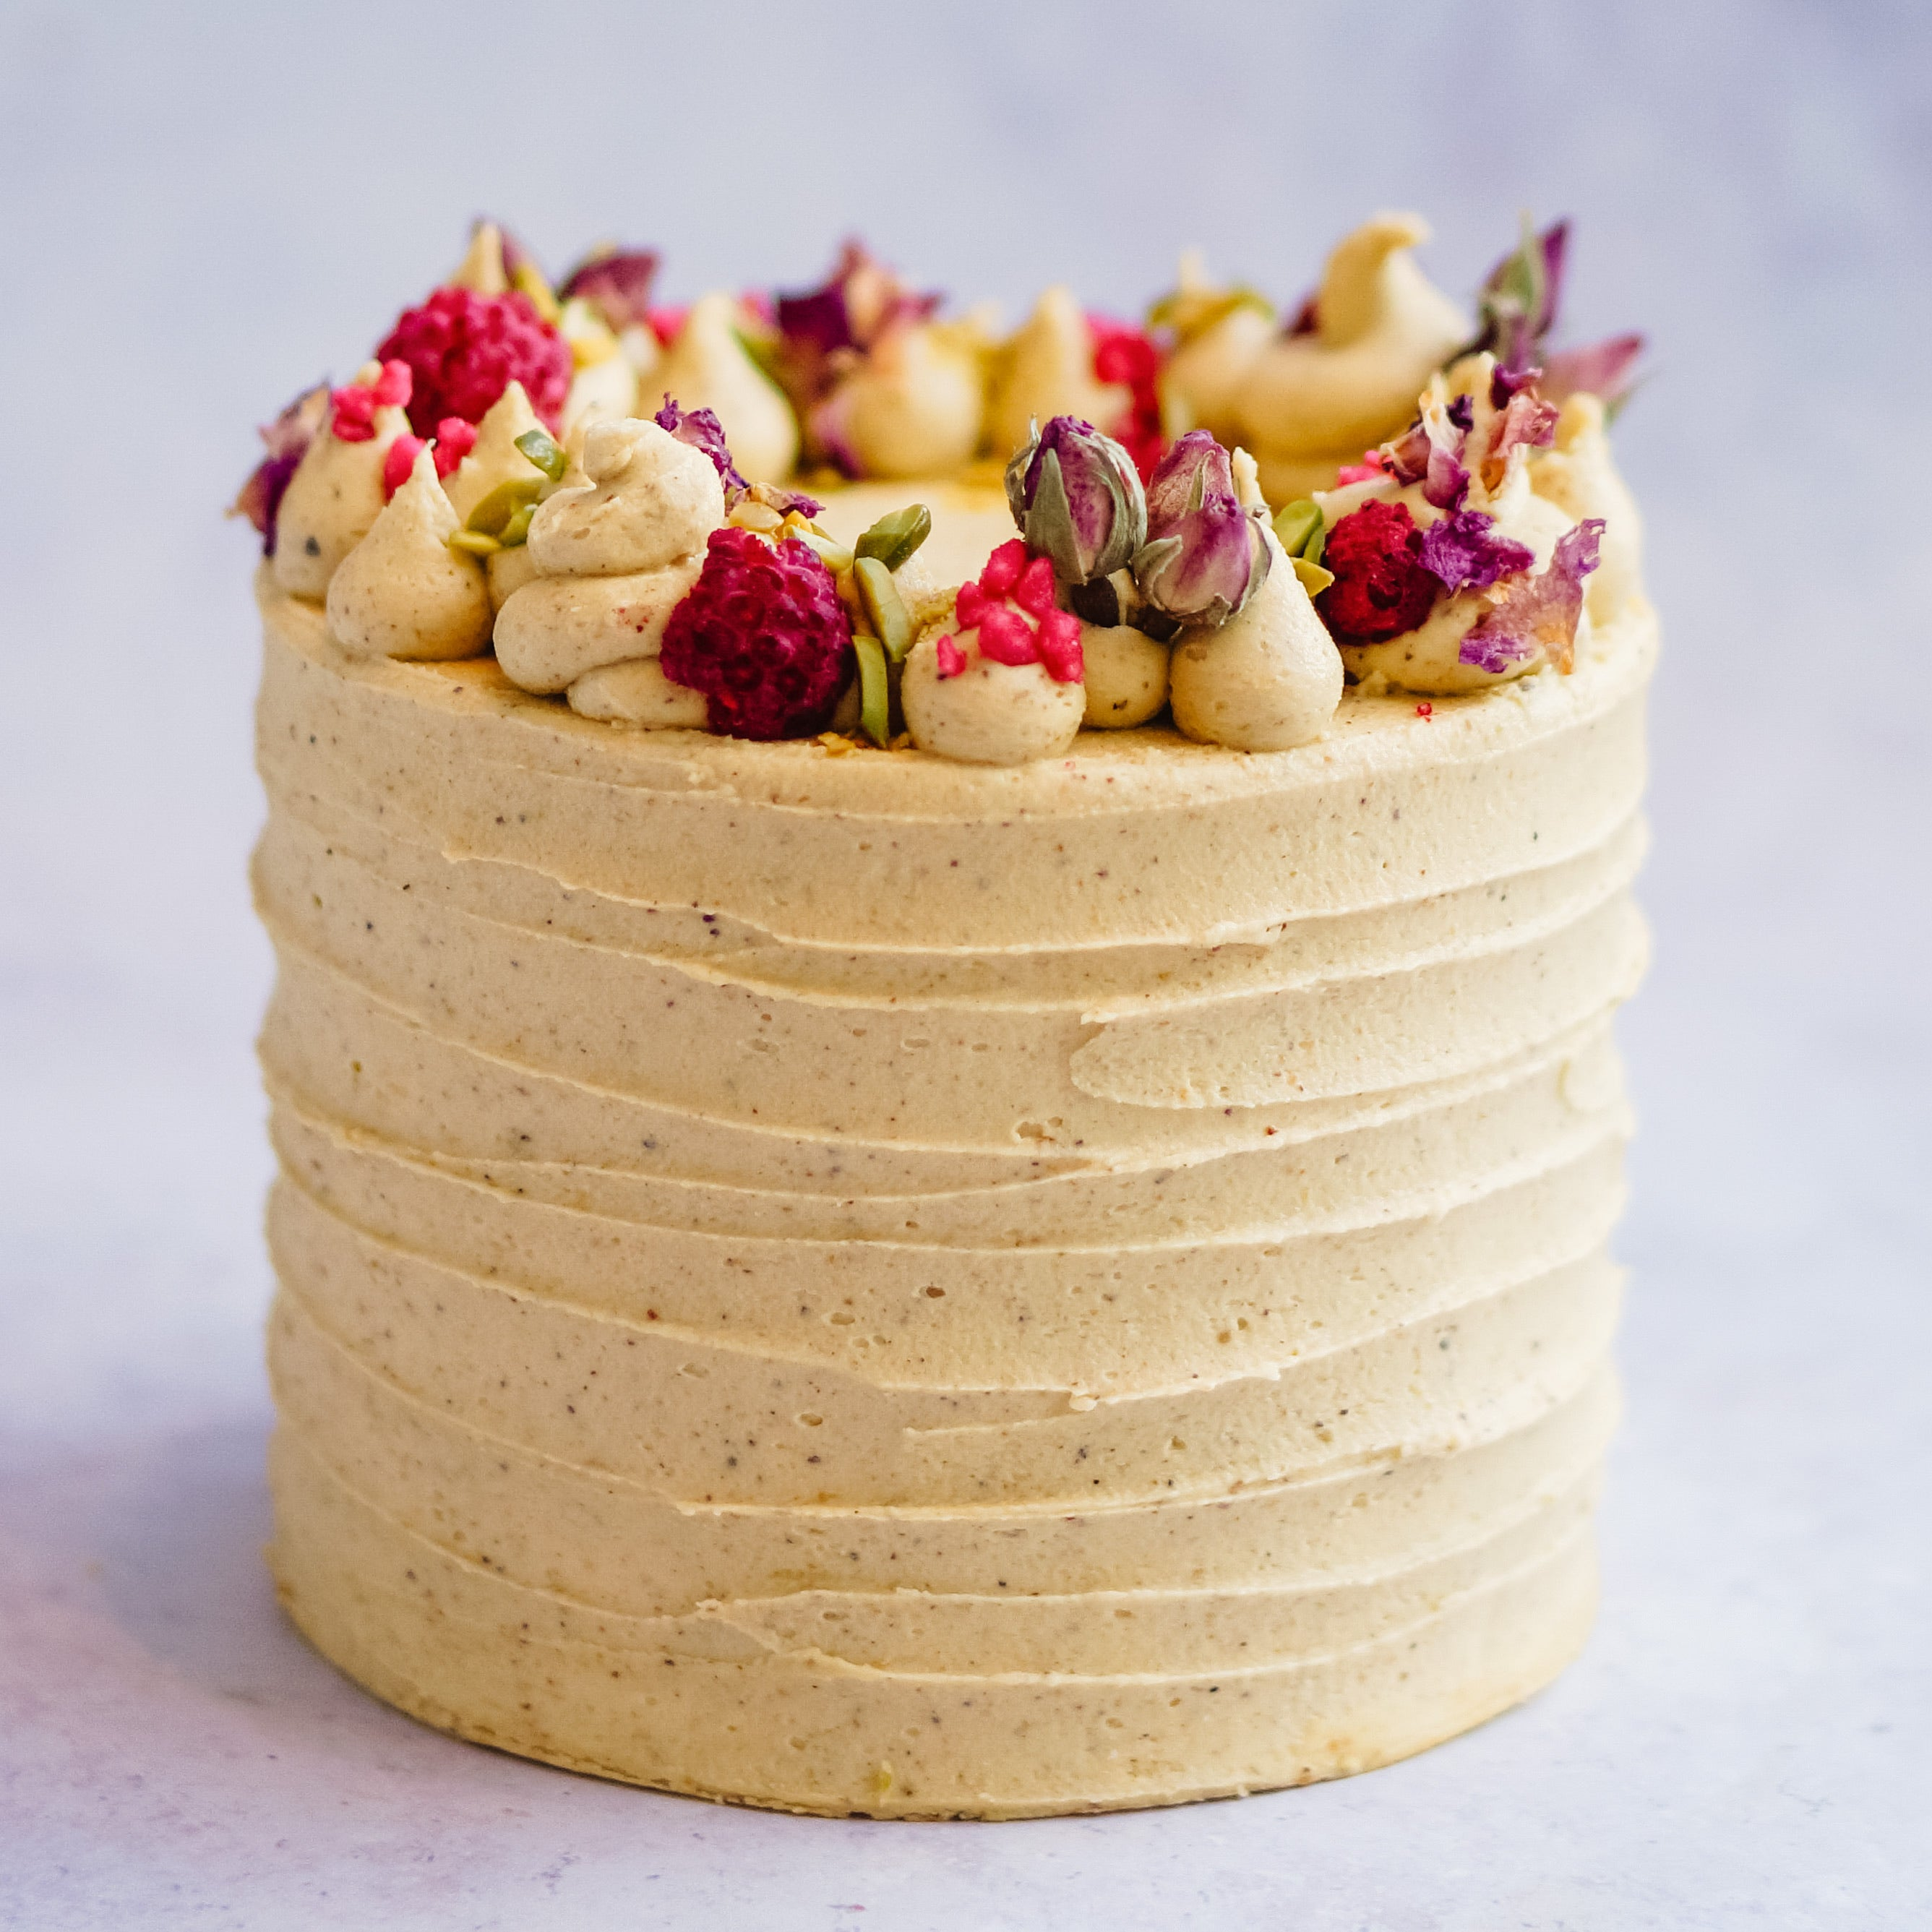 Rose, Raspberry and Pistachio Cake